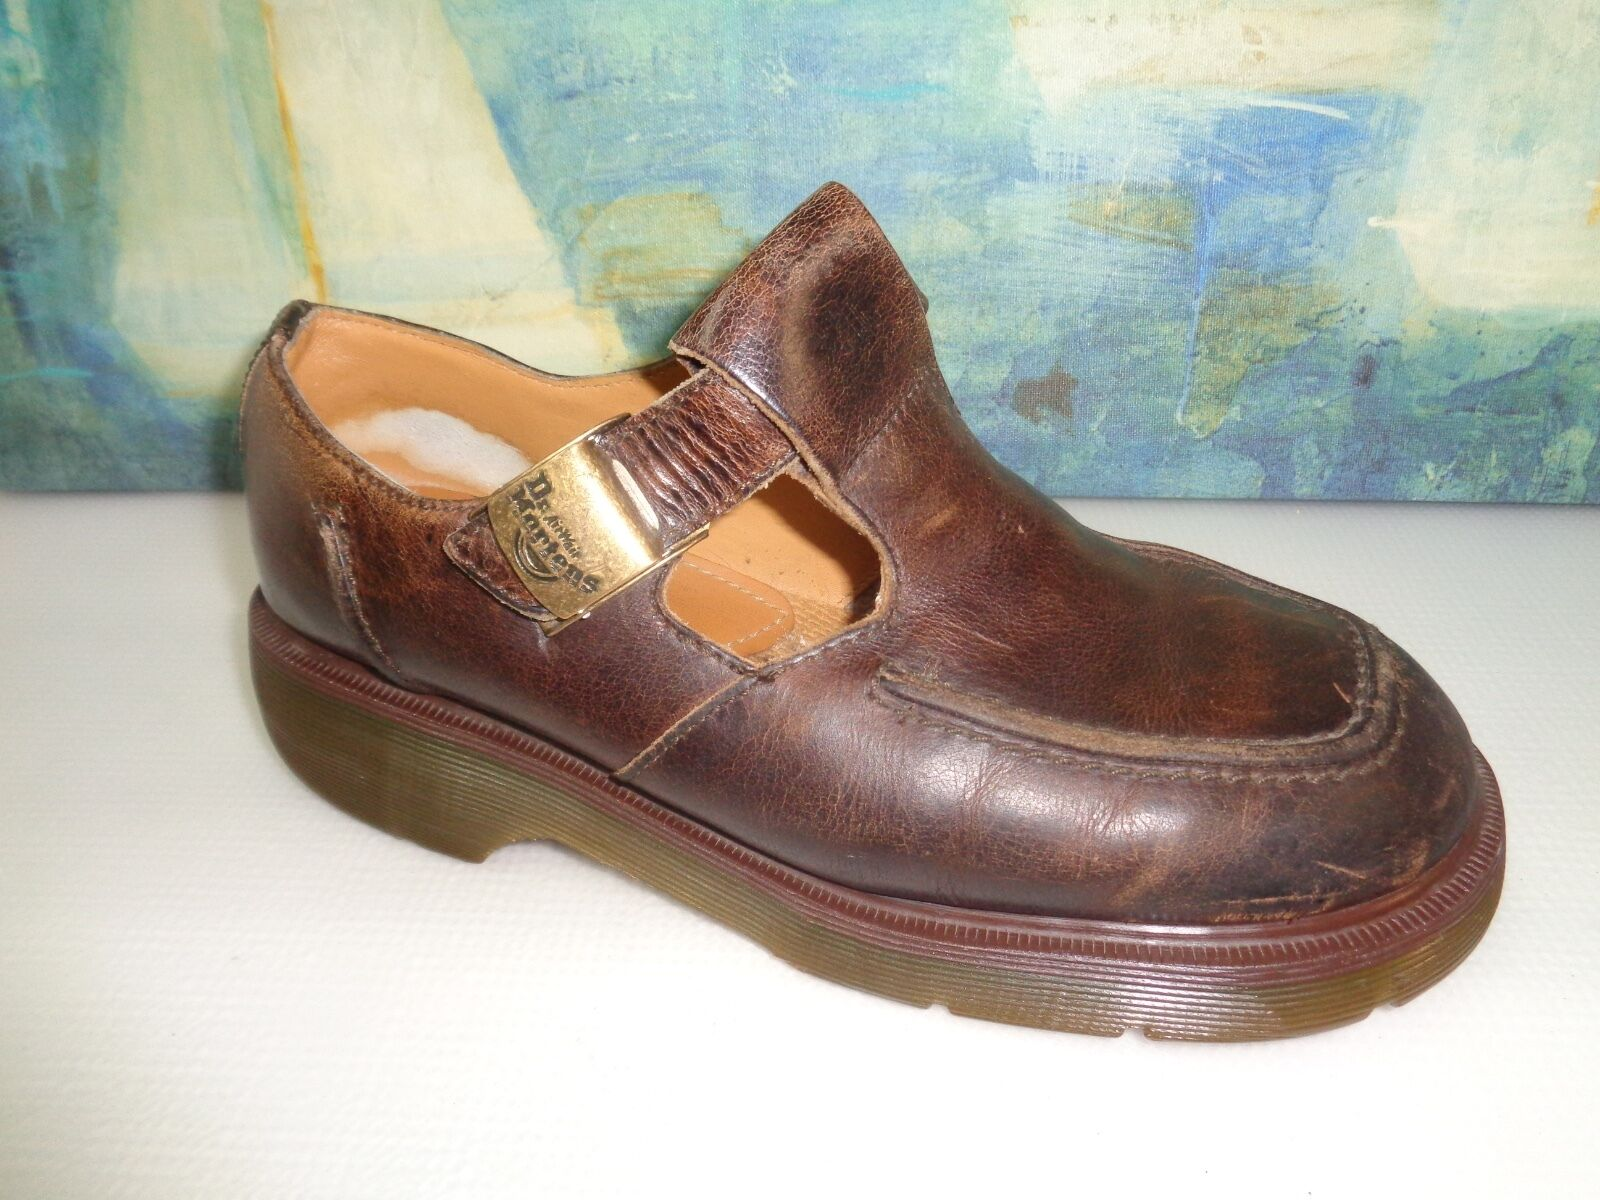 Dr Martens 8469 Uk 8 US 10 Wouomo Marronee Leather Mary Janes T Strap Bar